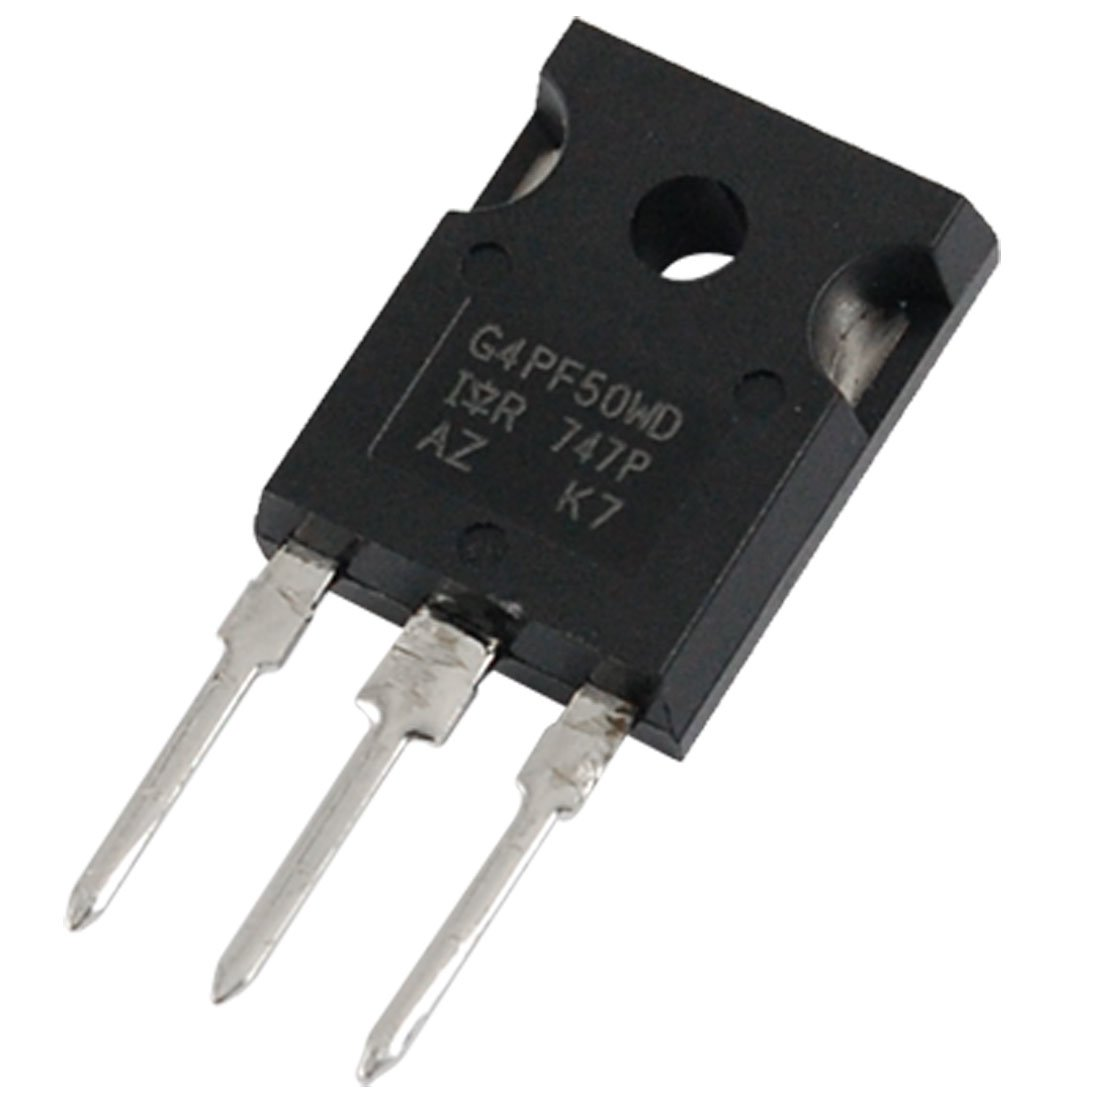 Aexit IRG4PF50WD 51A Interfaces 900V Insulated Gate Radio Frequency Transceivers Transistor IGBT